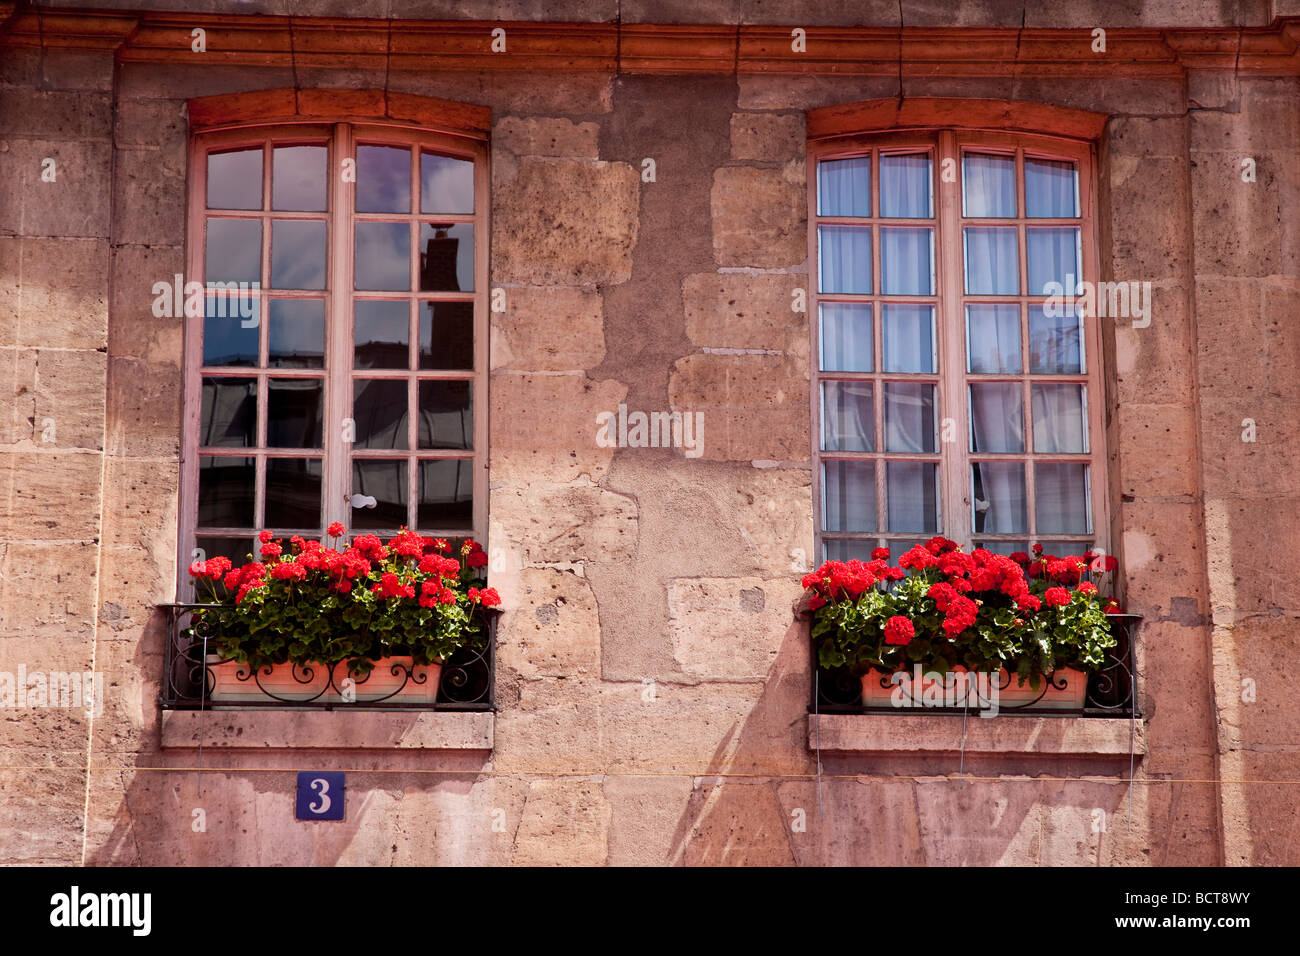 Windows and flower boxes in St. Germain, Paris France - Stock Image